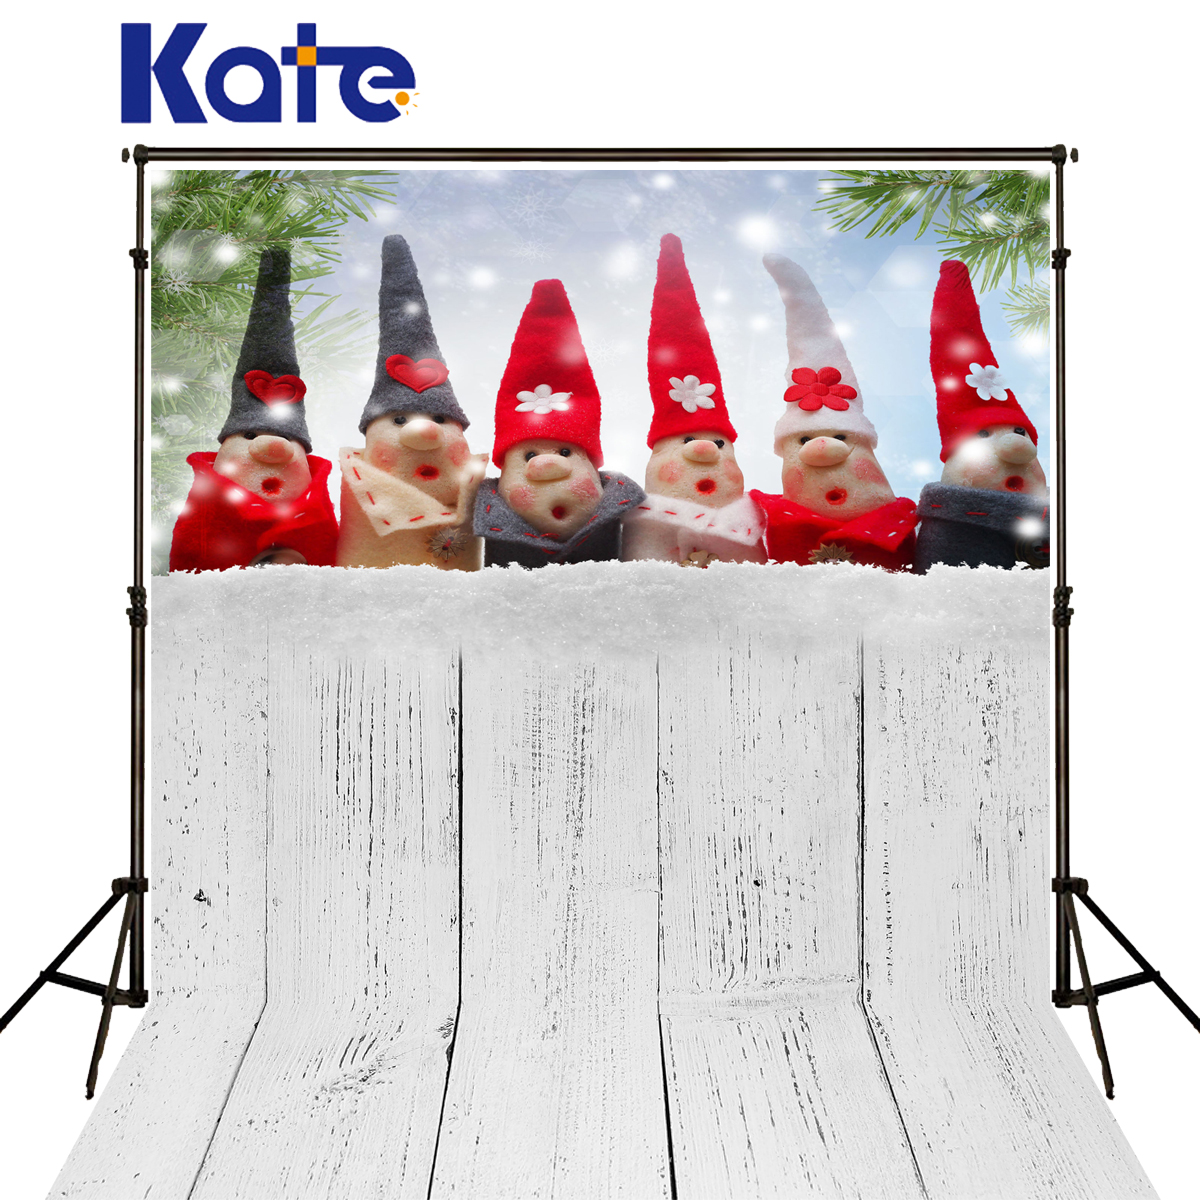 Kate Christmas Backgrounds Red Hat Toy Snow Fondo Navidad Photo Backdrops White Wood Floor Fundo Fotografico For Photo Studio kate photography backdrops newborn baby black and white grid fondo navidad chess board backgrounds for photo studio